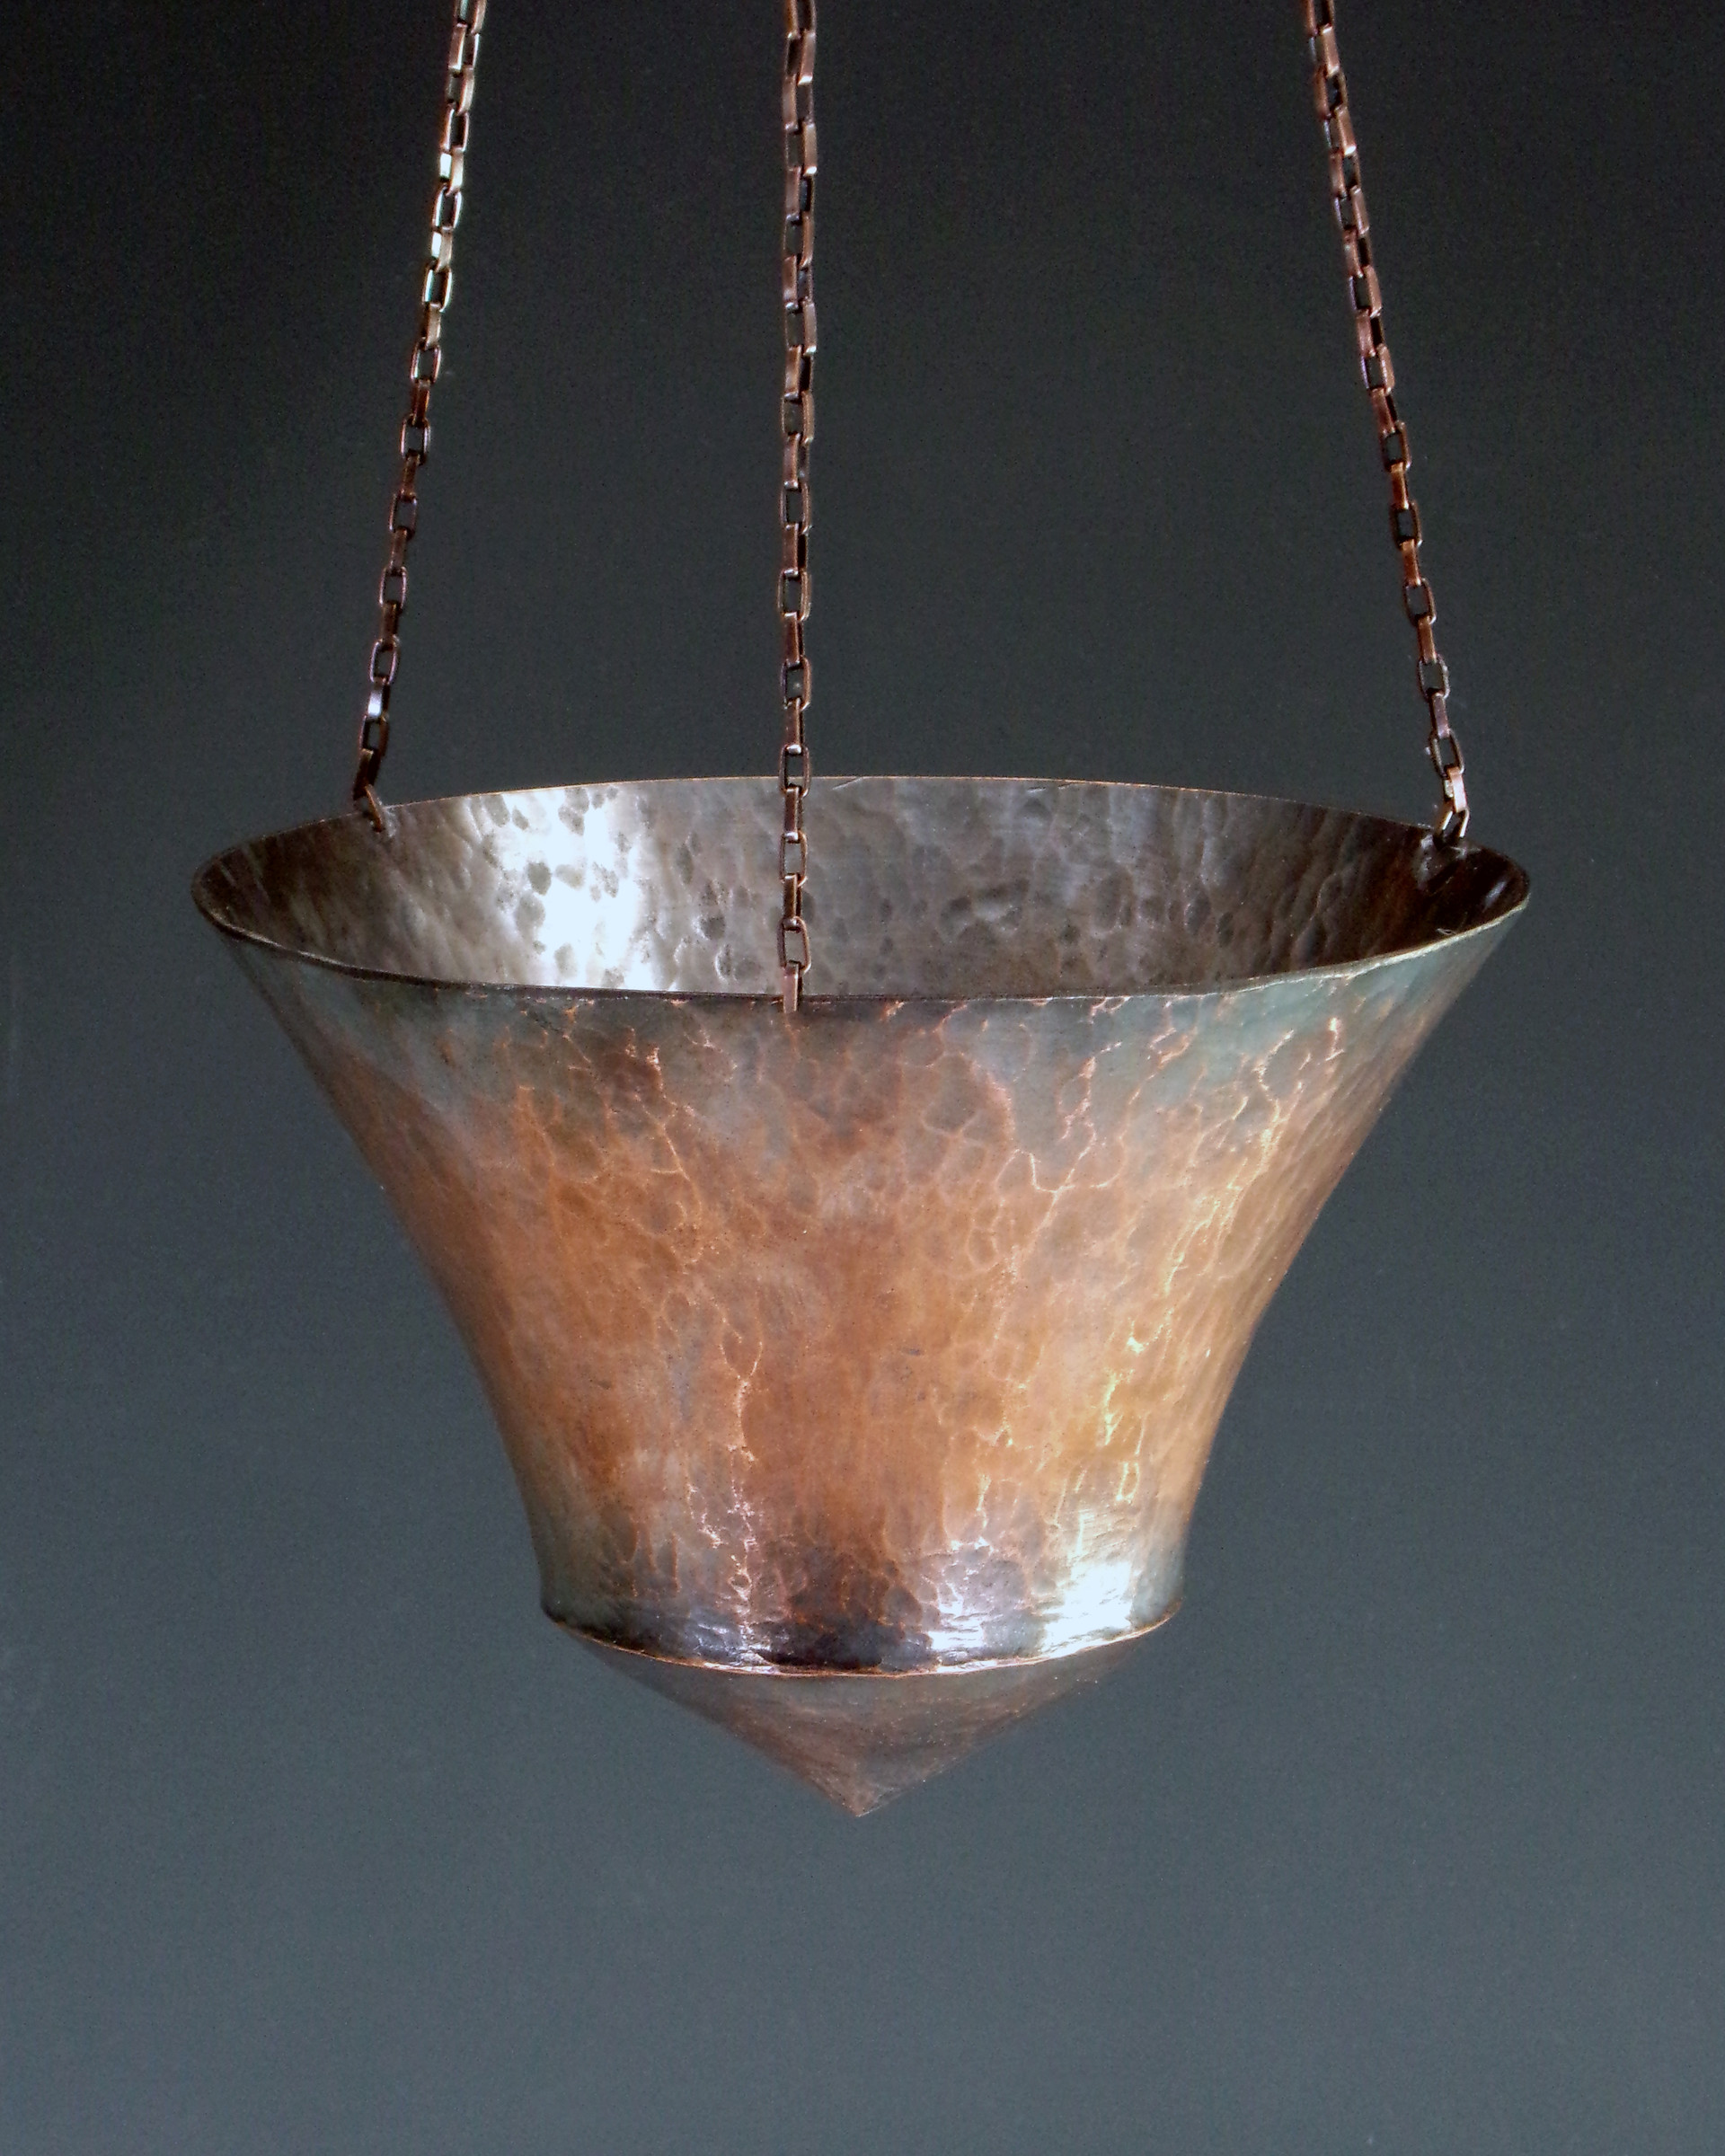 Collateral Damage [Detail], Raised Copper and Copper Chain, 2020